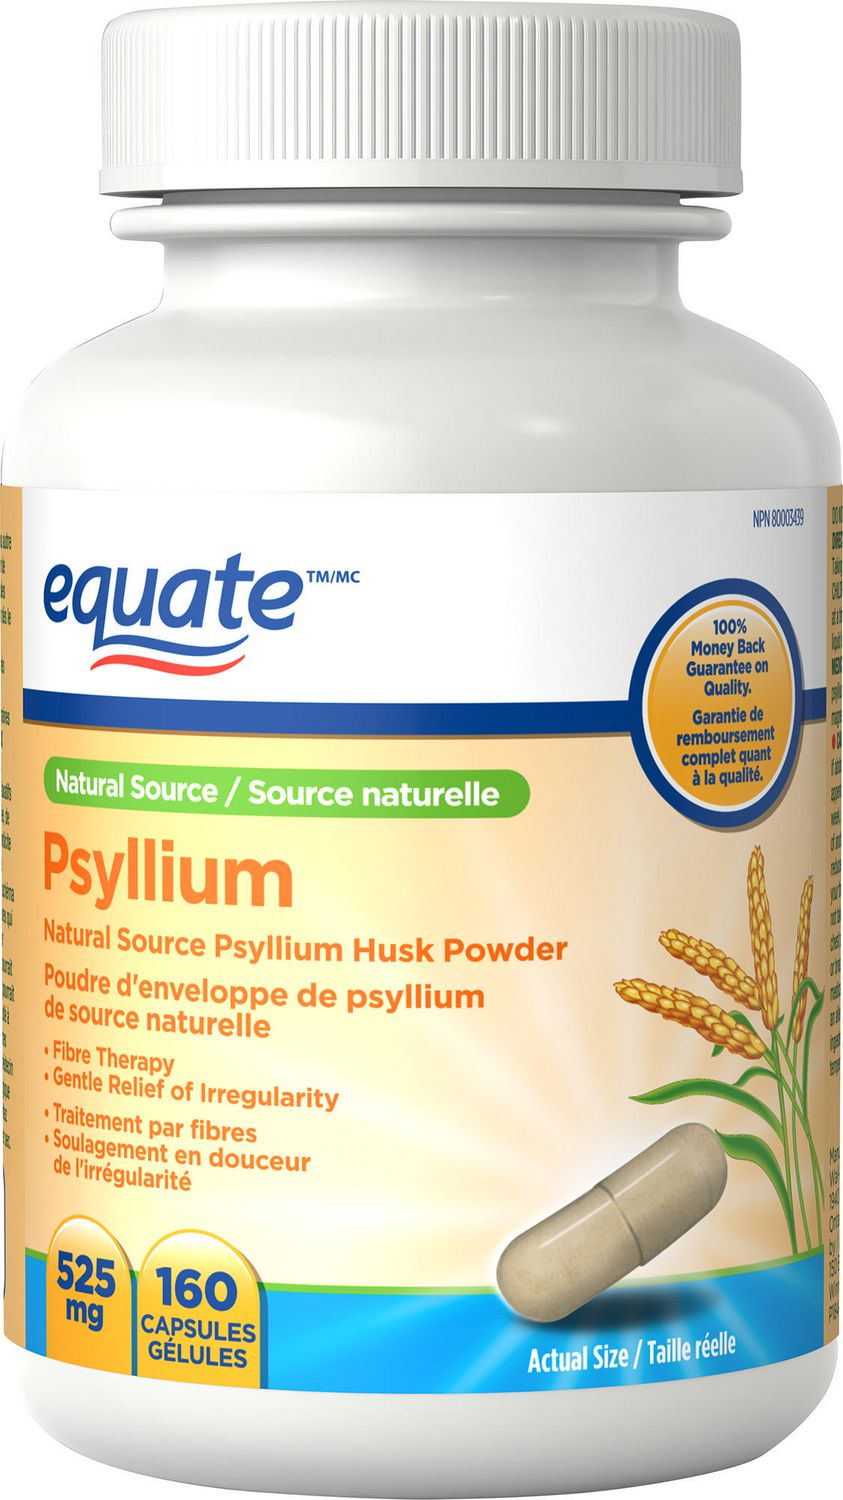 Equate Psyllium Natural Source Psyllium Husk Powder 525 Mg 160